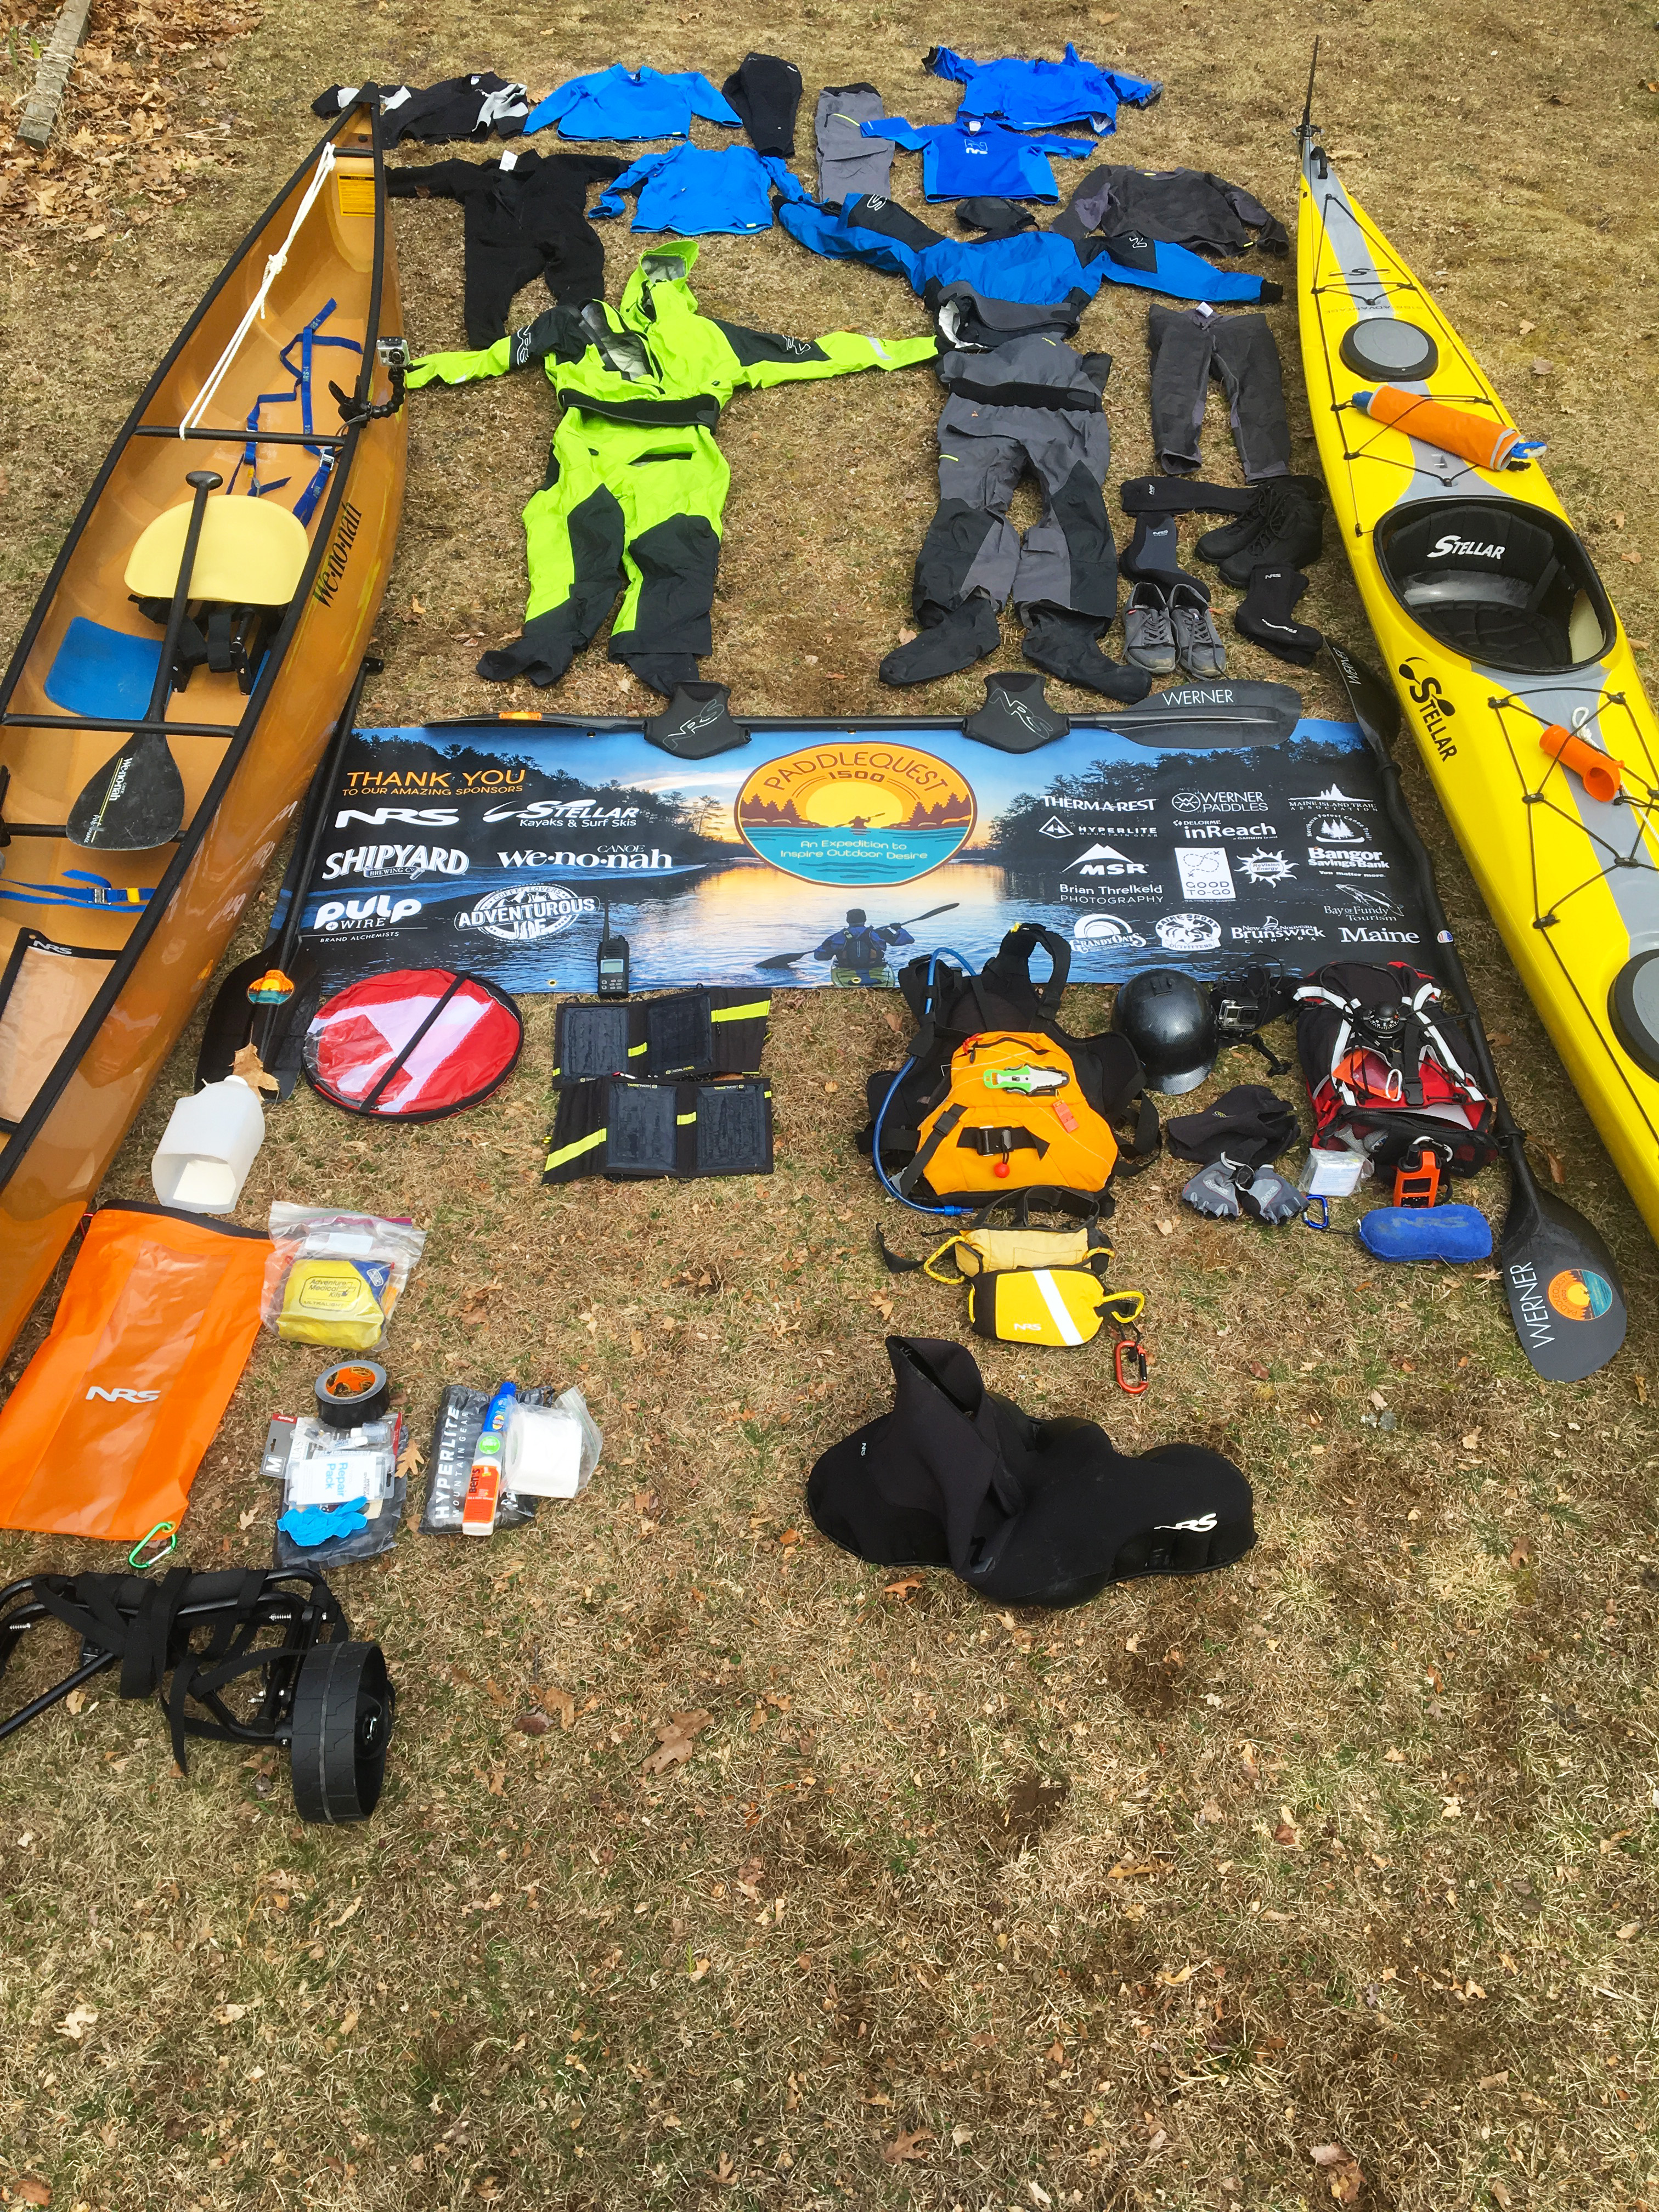 PaddleQuest 1500 Expedition Paddling & Camping Kit - Paddle